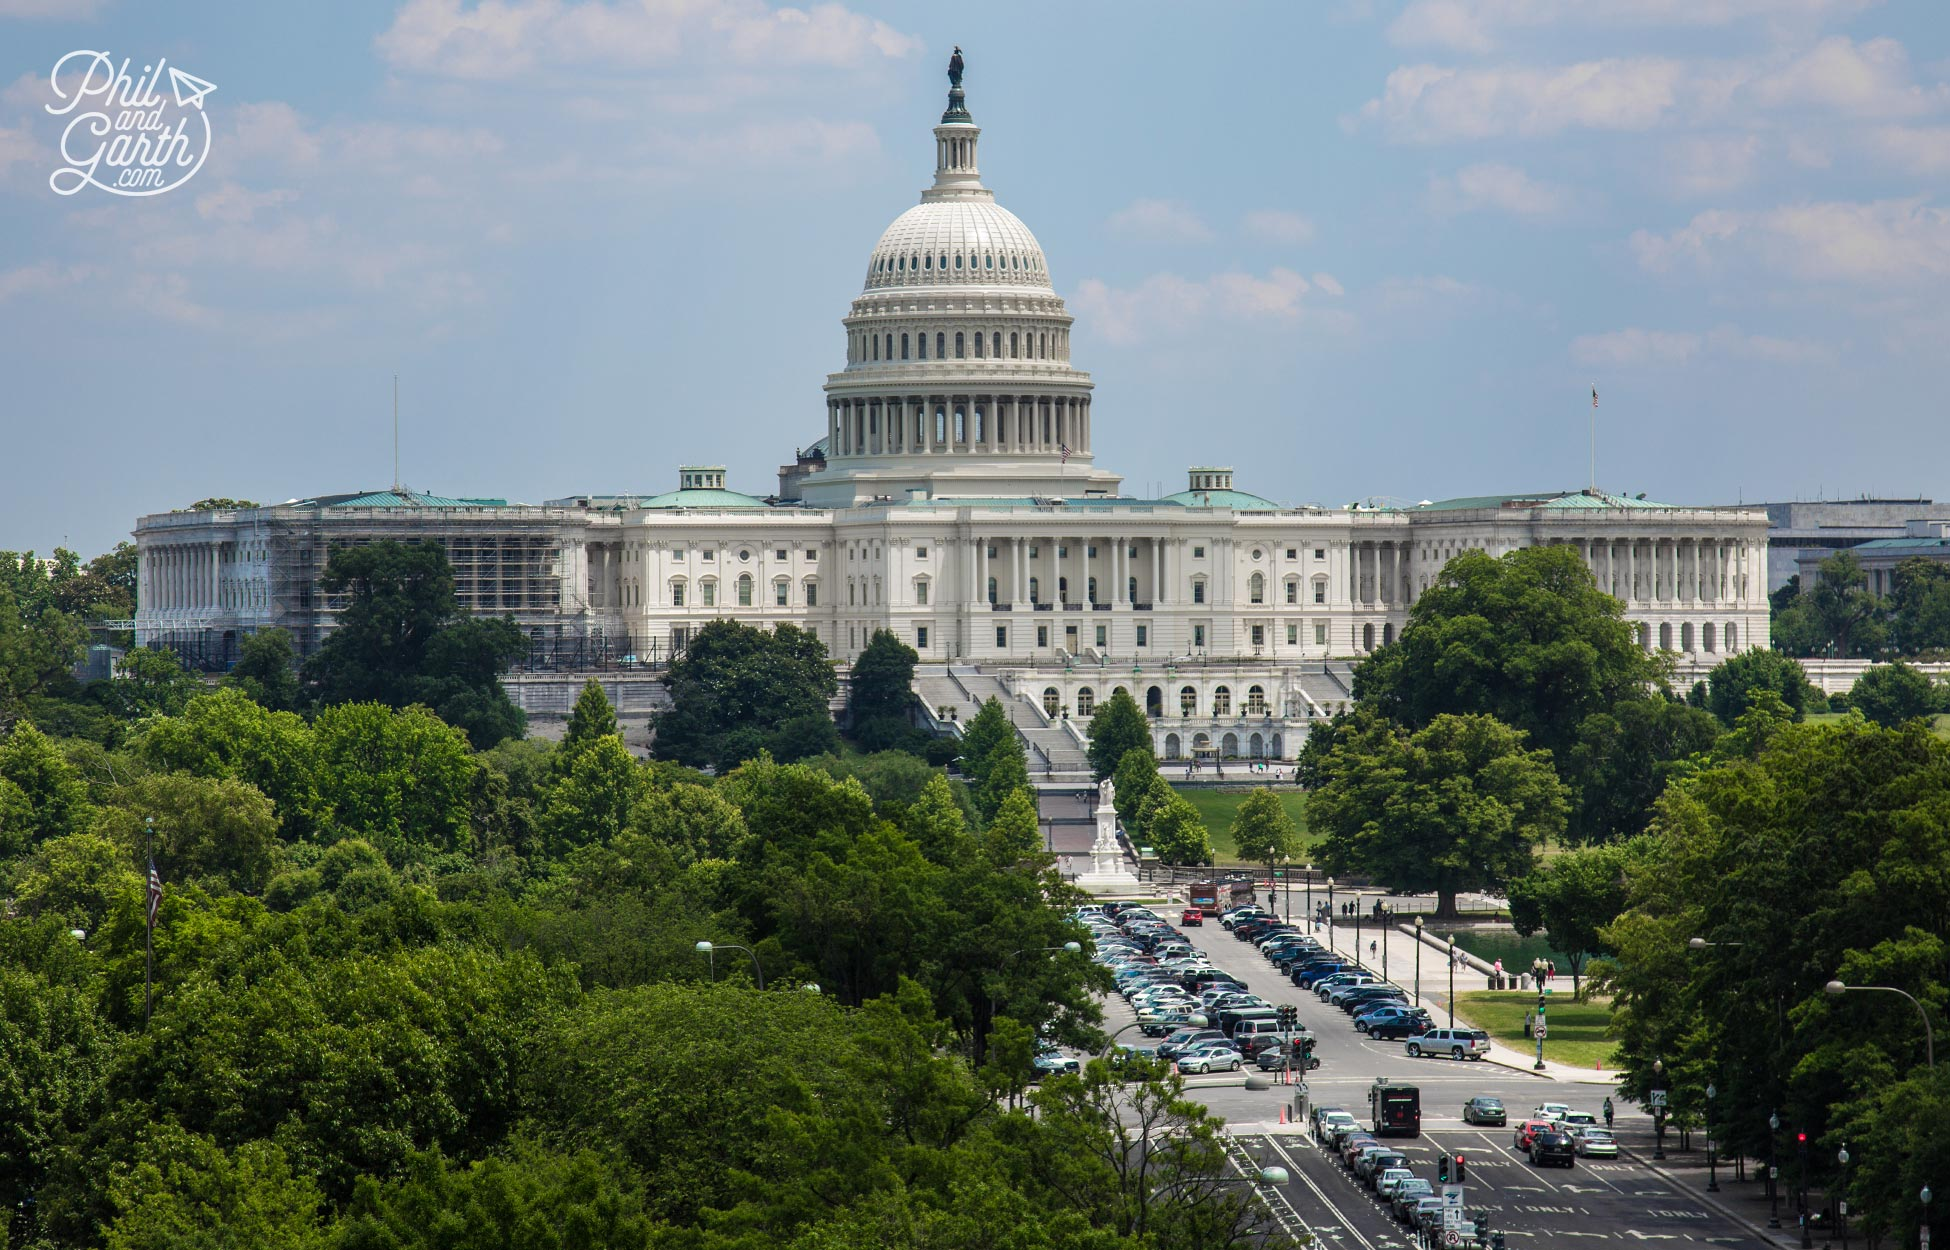 The best view of Pennsylvania Avenue and the US Capitol is from the Newseum